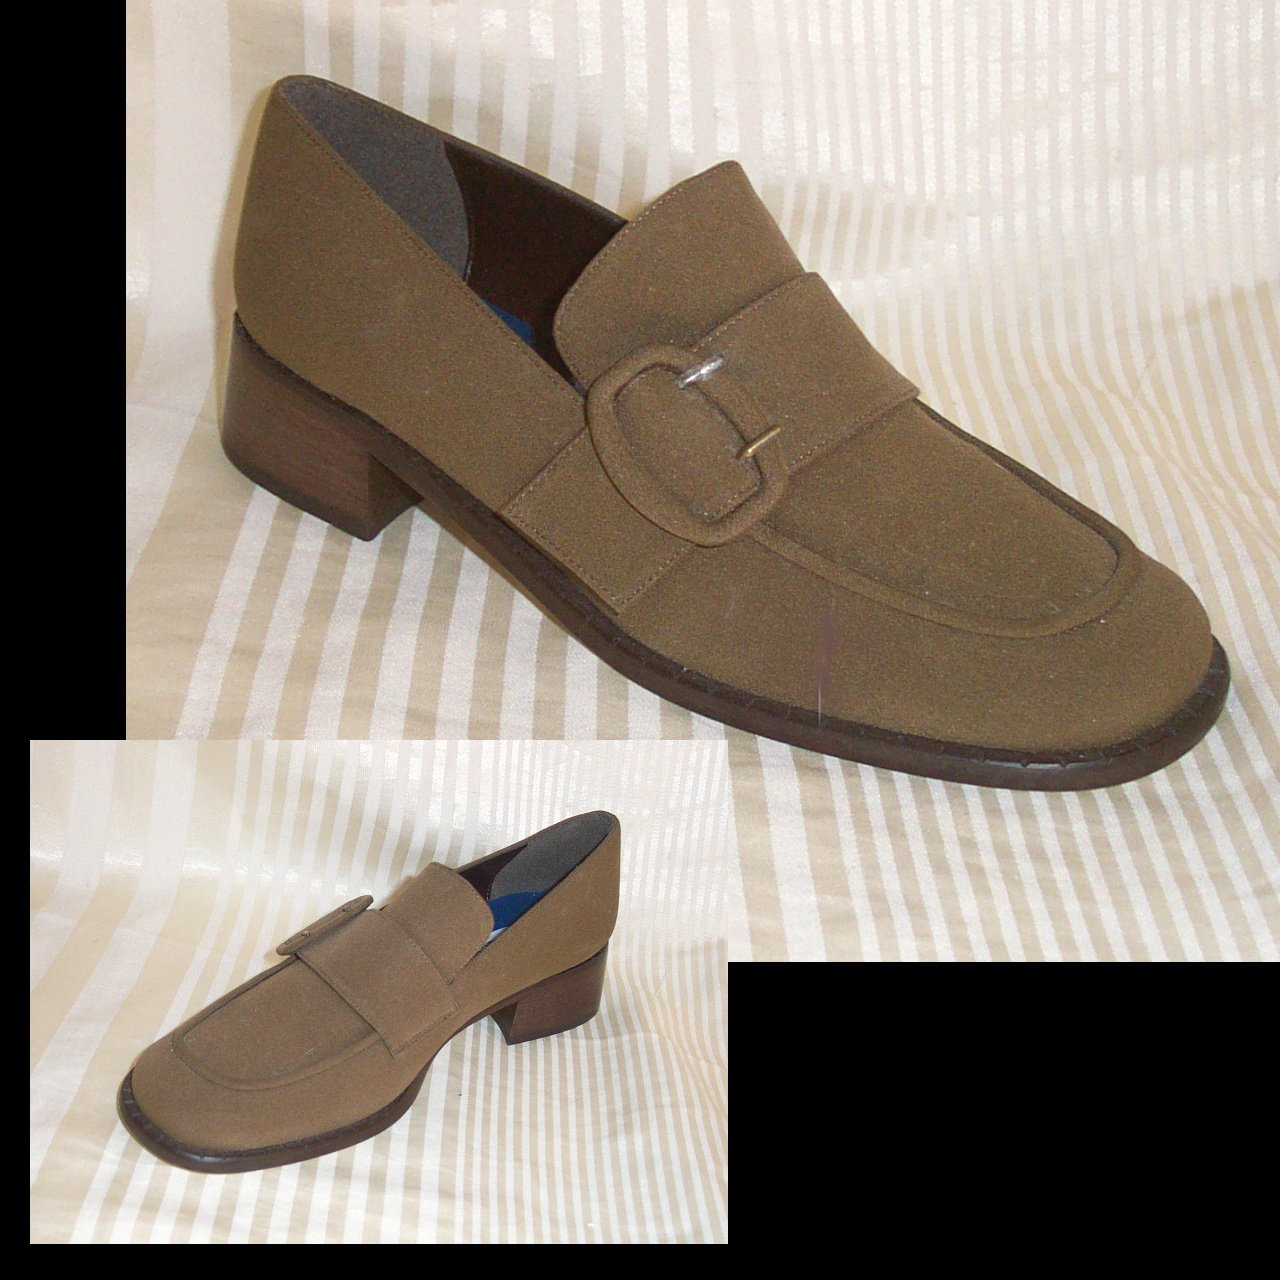 Brown Buckle Microfiber Loafers by A. Marinelli - size 7.5M